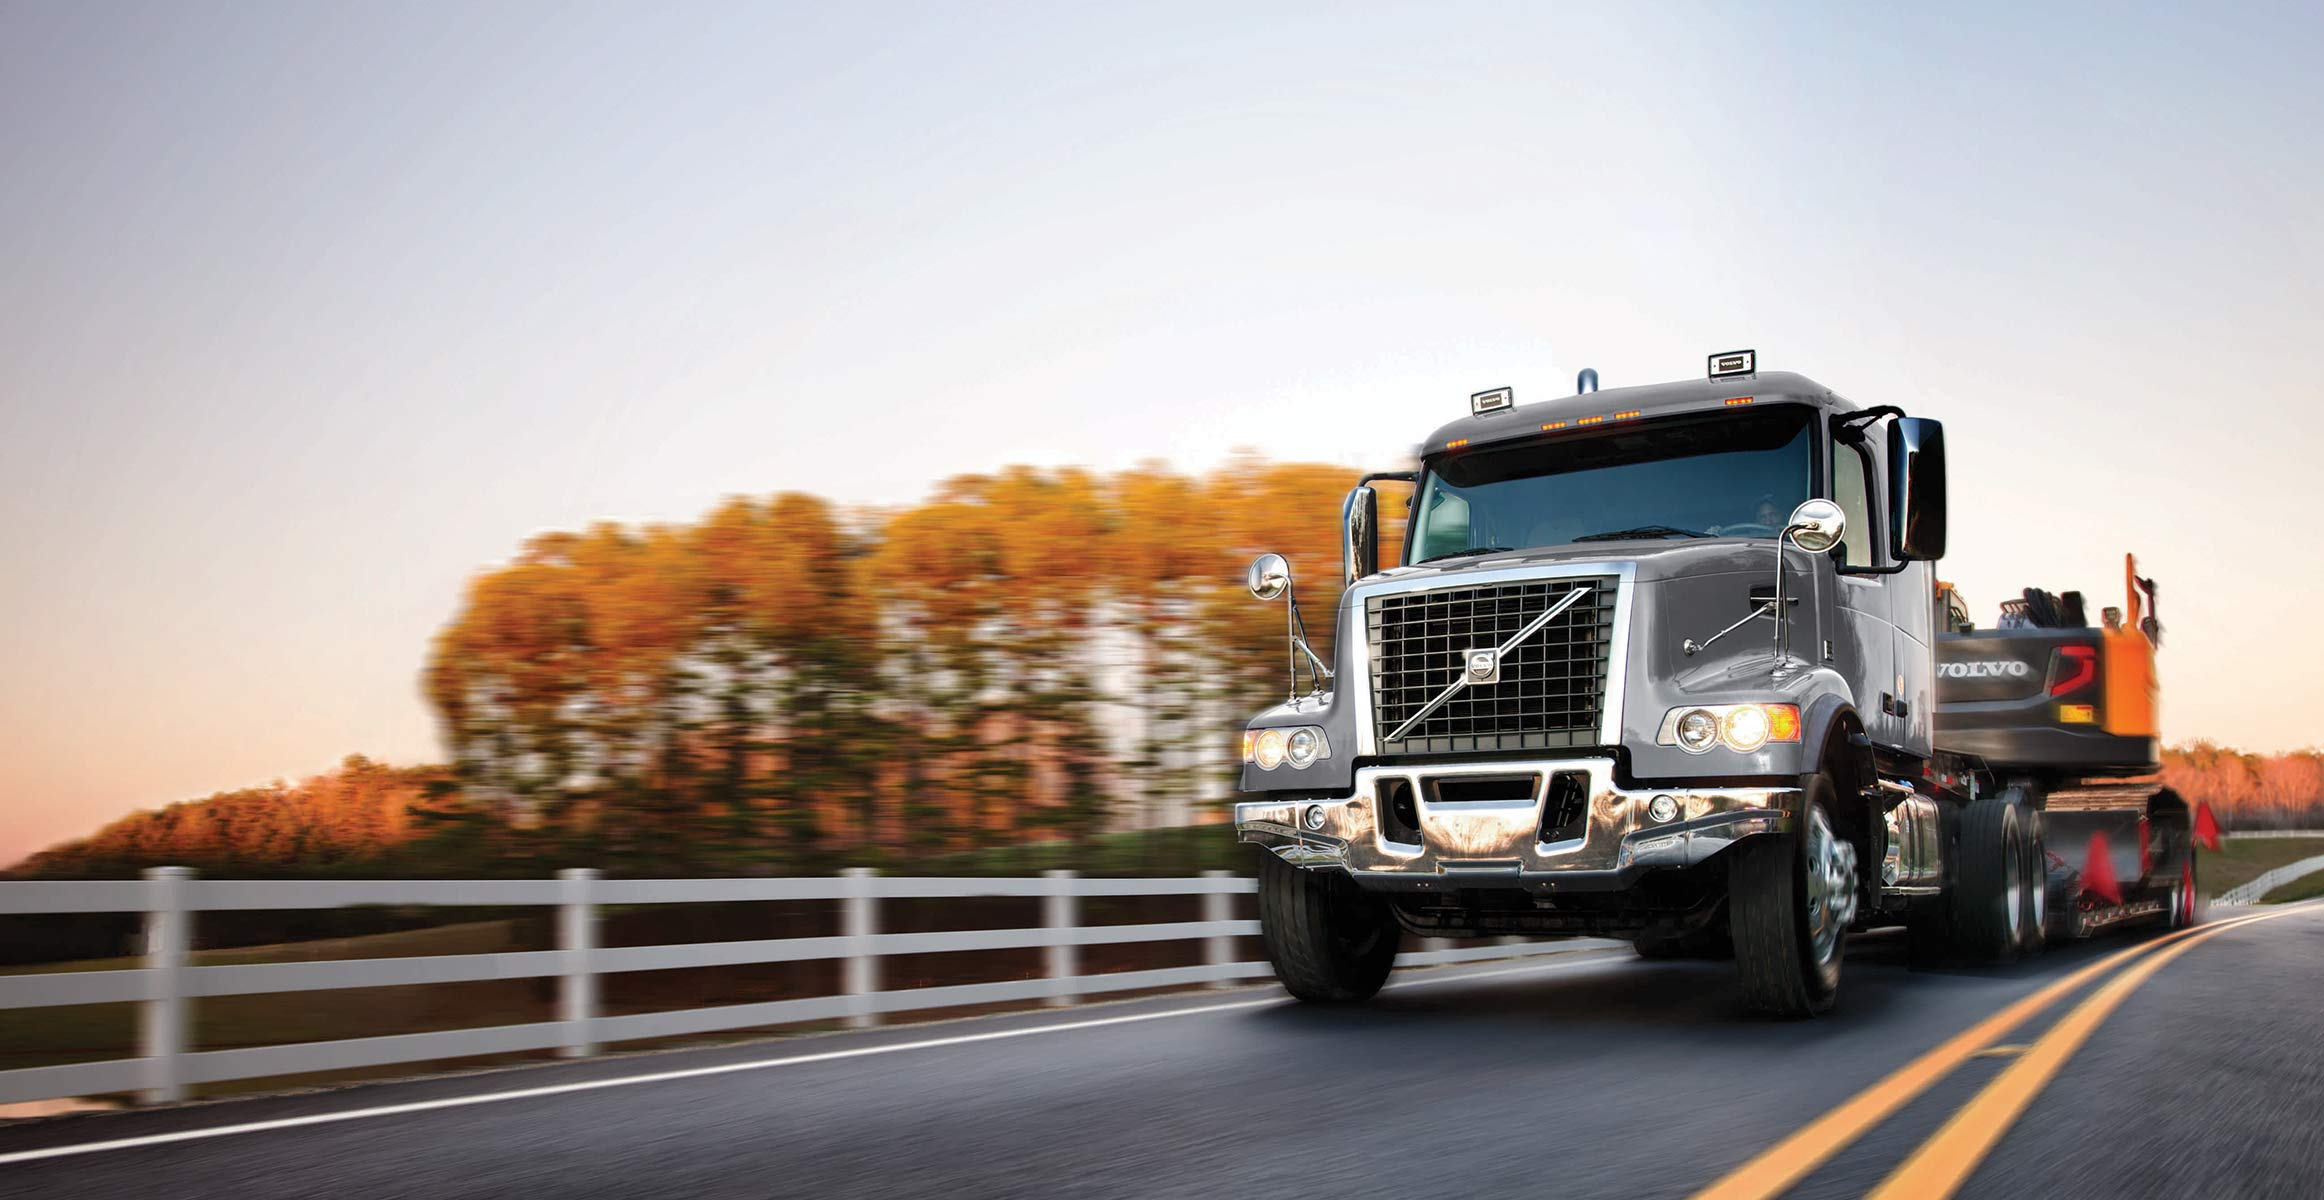 Volvo VHD series - For when you need to get off the highway | Volvo Trucks